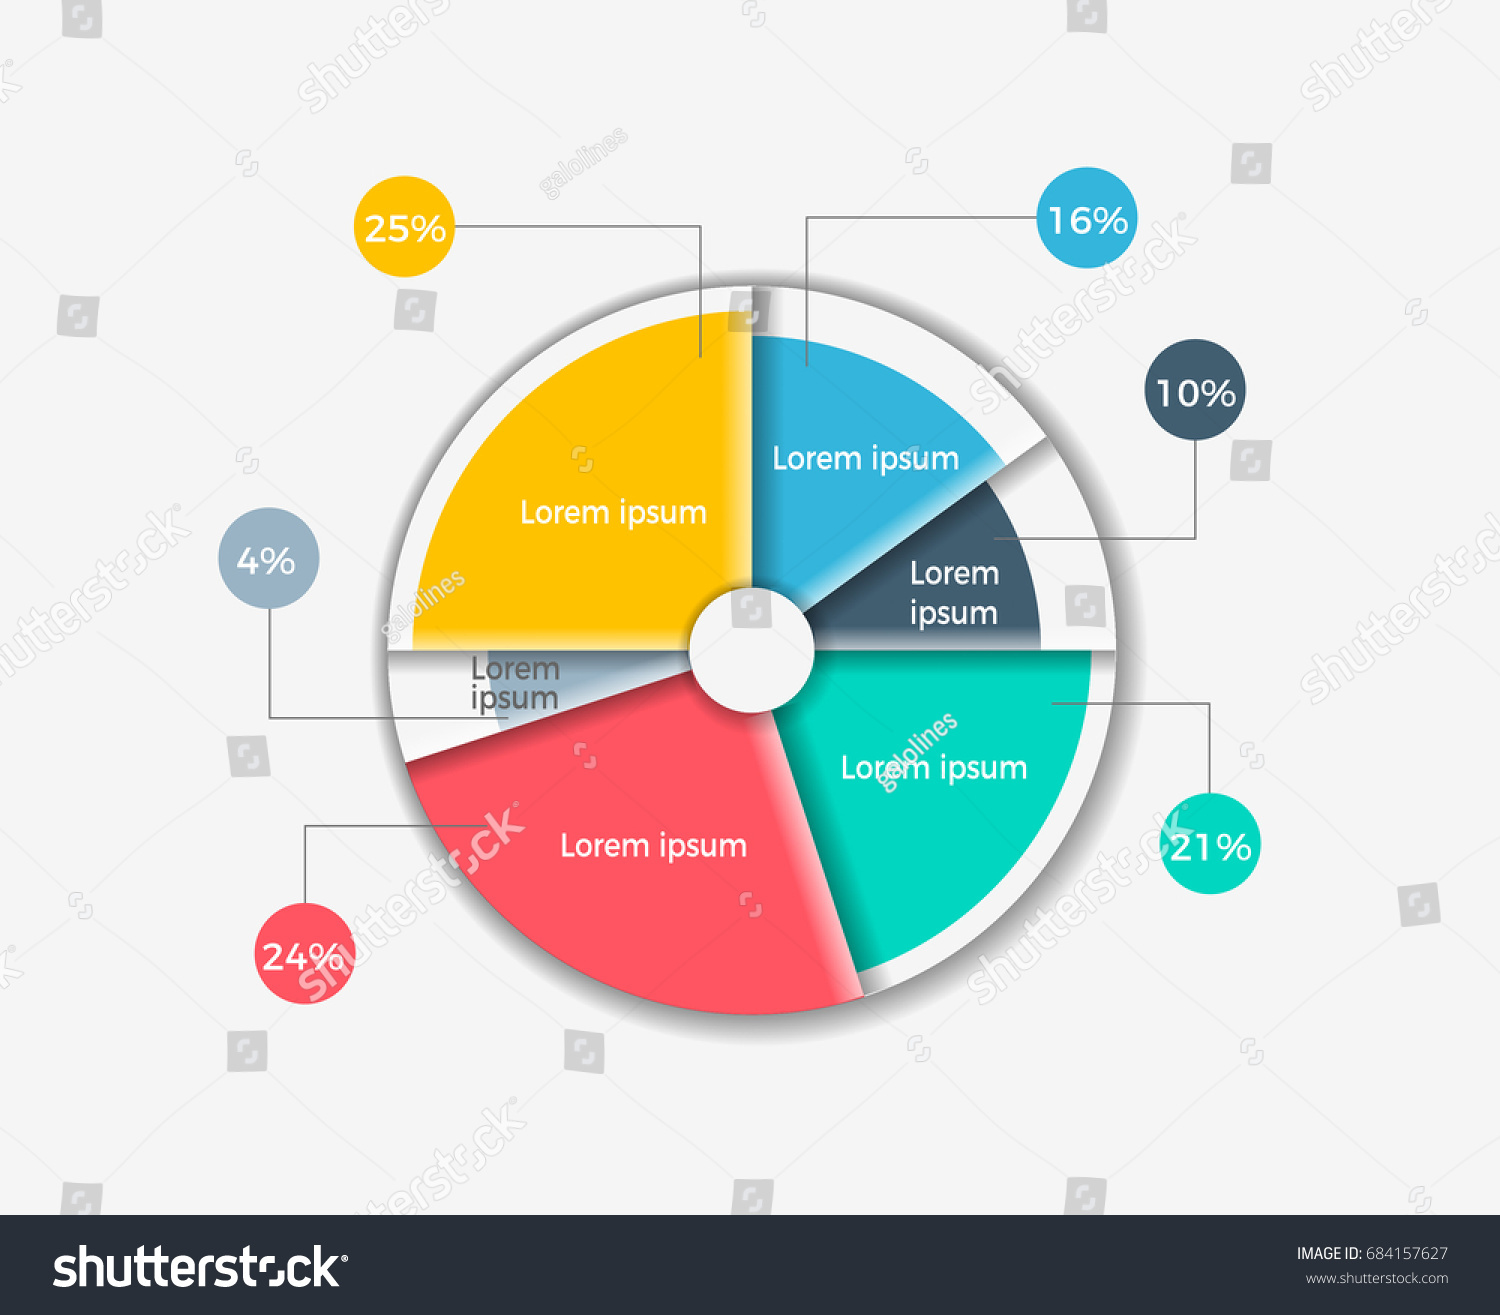 Easy pie chart generator two way electrical switch wiring diagram sample of pie graph fishbone diagram for labs house of quality stock vector circle diagram an example of using infographic template for creating pie charts ccuart Image collections